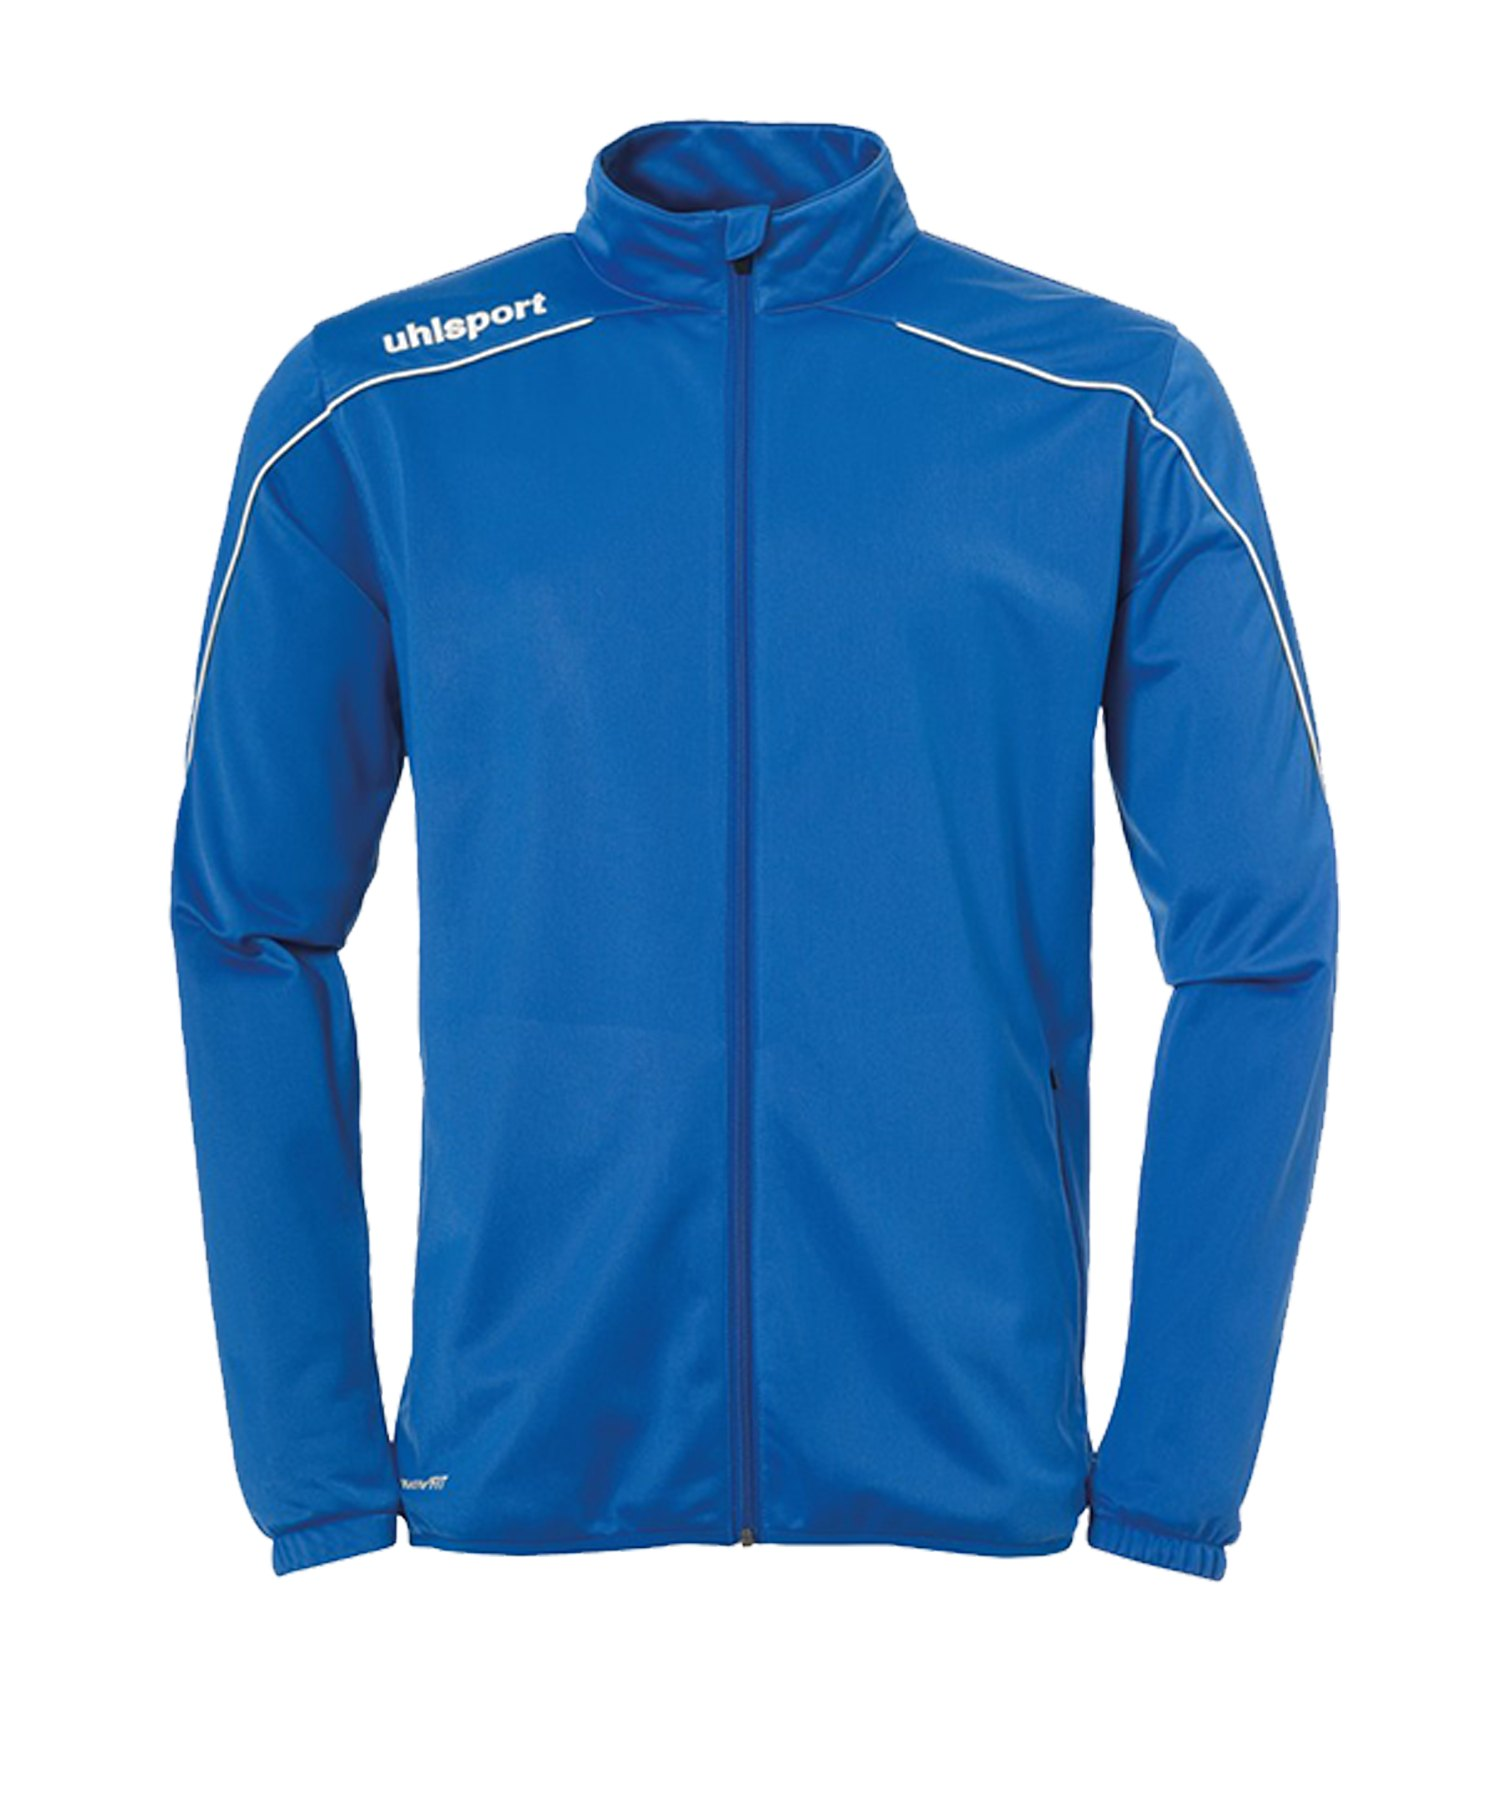 Uhlsport Stream 22 Trainingsjacke Classic Blau F03 - Blau